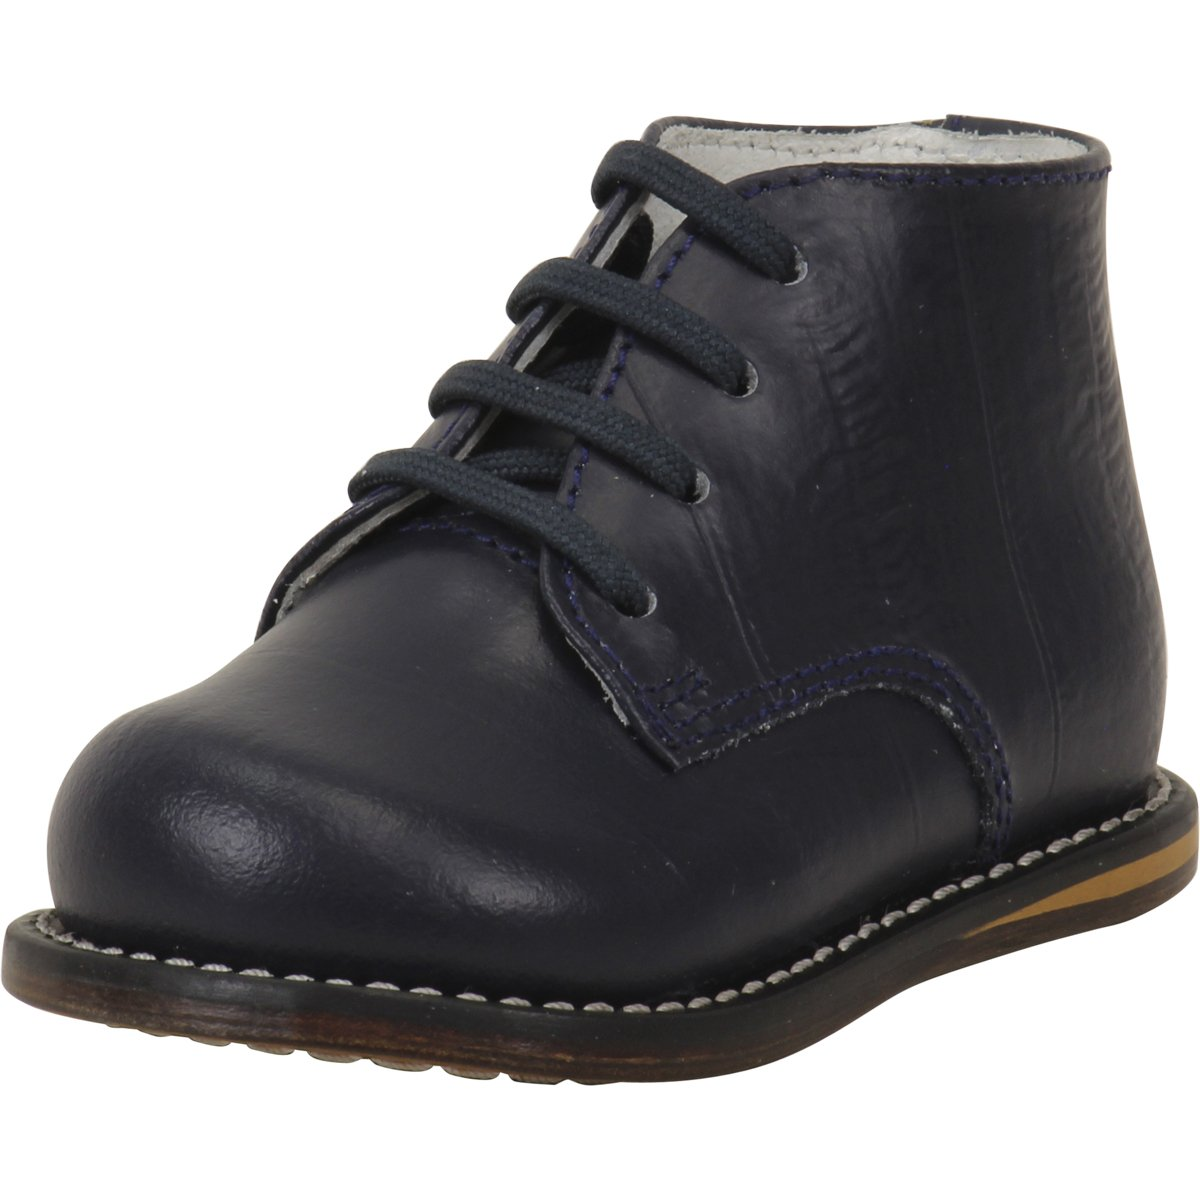 Josmo Infant/Toddler Boy's First Walker Navy Eel Lace Up Oxfords Shoes 8190